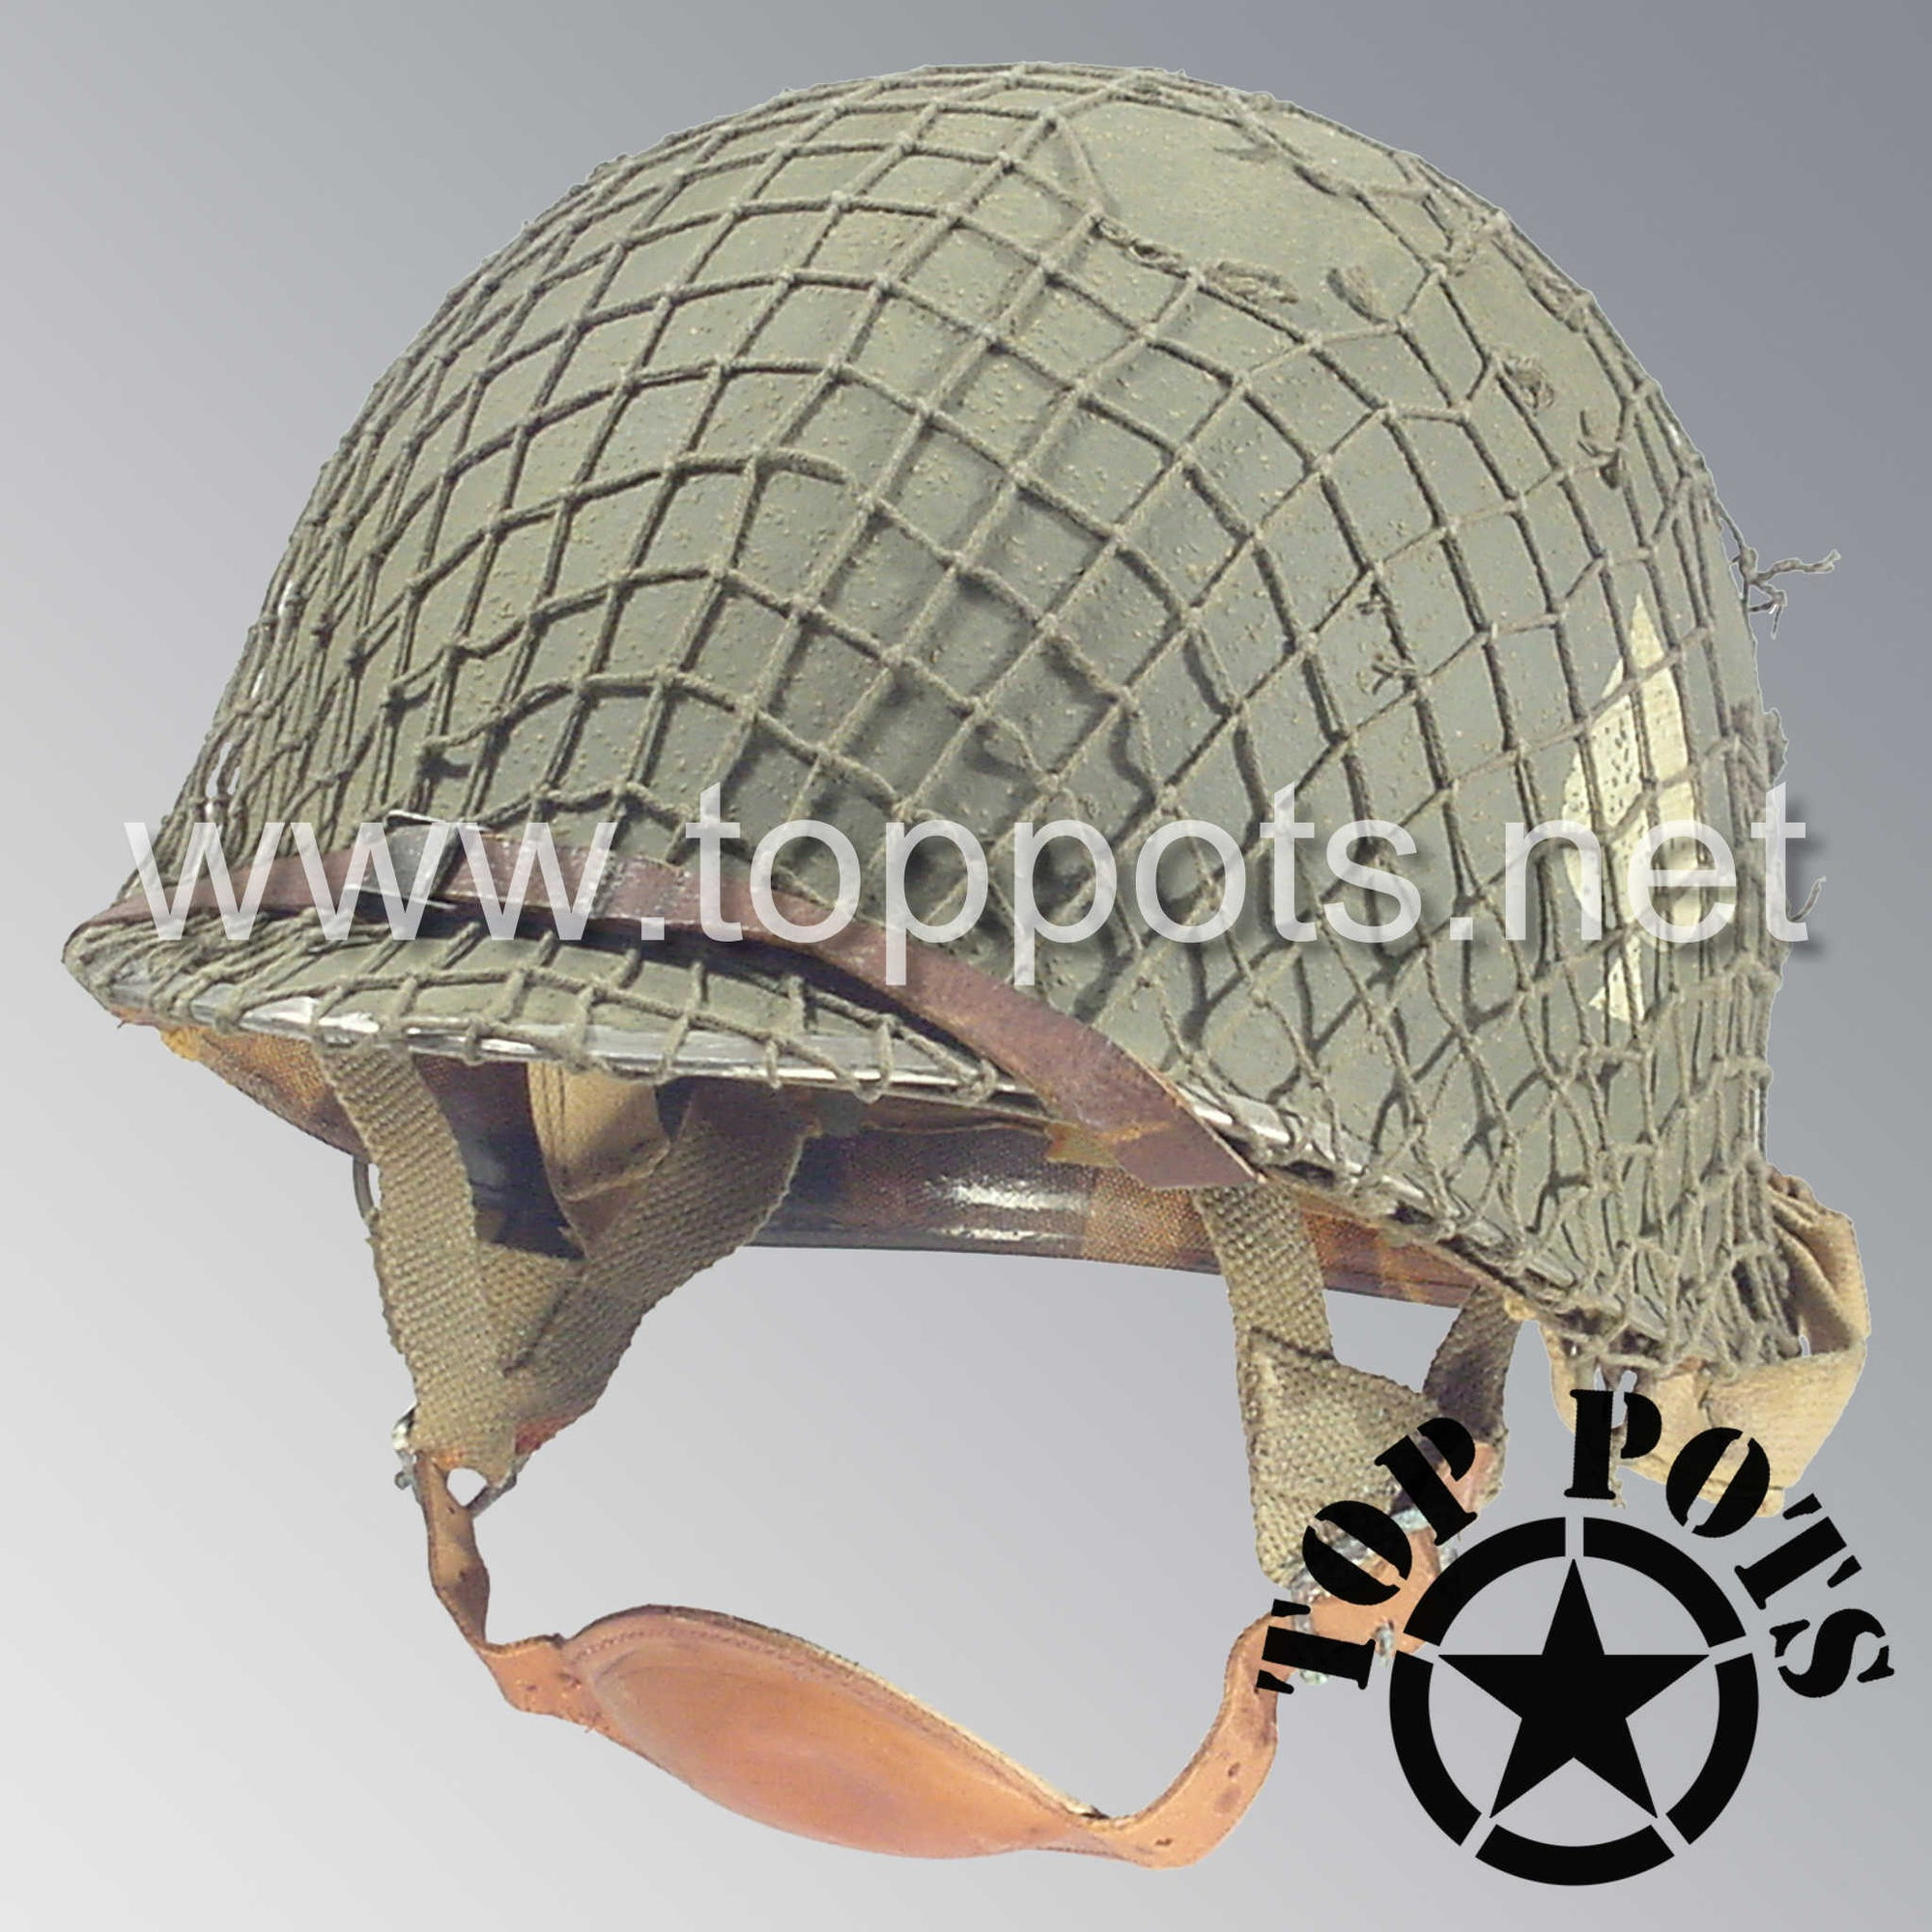 Image 1 of WWII US Army Aged Original M2 Paratrooper Airborne Helmet D Bale Shell and Liner with 506th PIR 1st Battalion NCO Emblem with Net